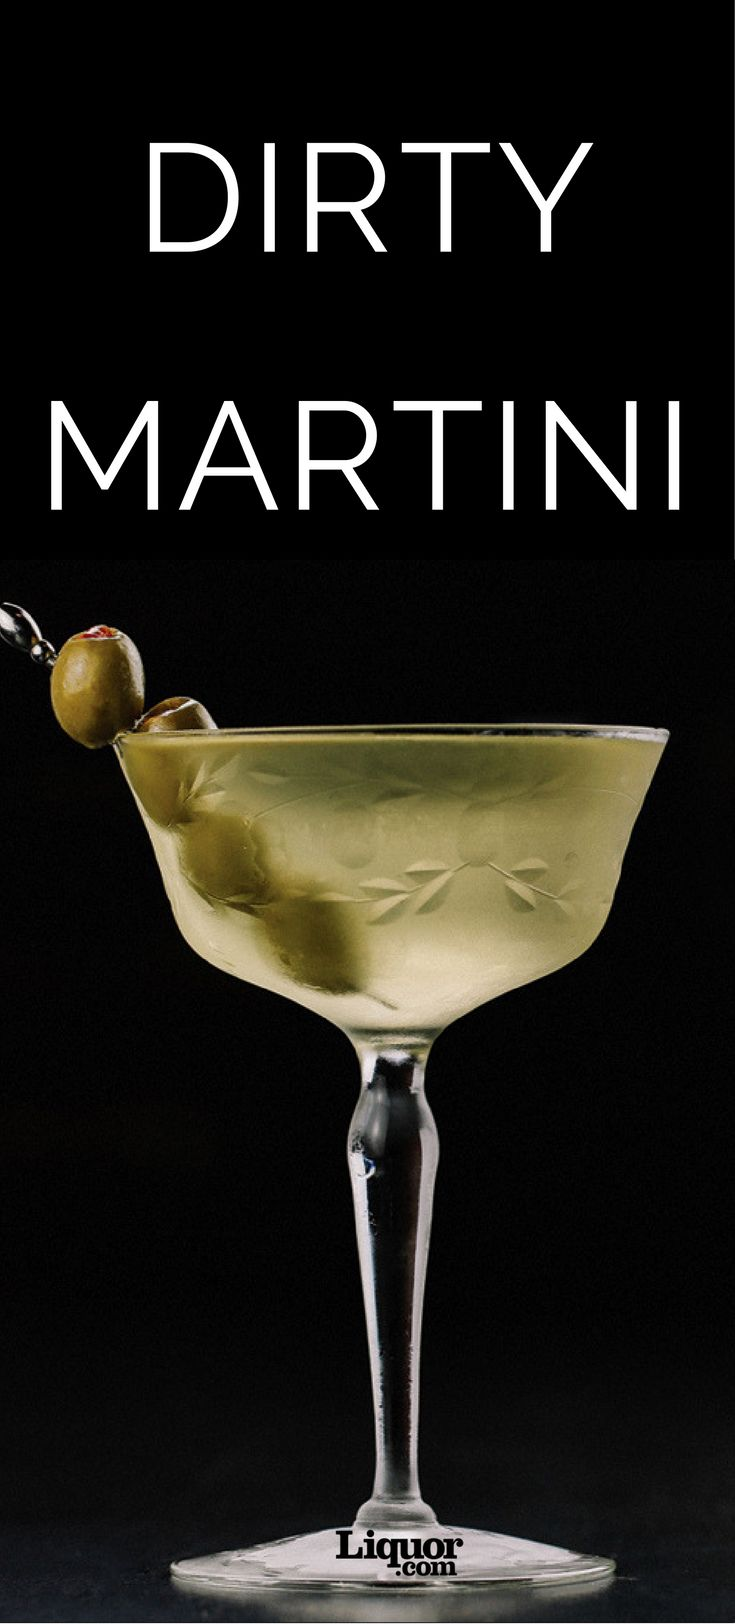 The Dirty #Martini is a Classic #Cocktail You Should Absolutely Learn How to Make. A dash of olive brine brings a salty, savory note to the all-time classic.